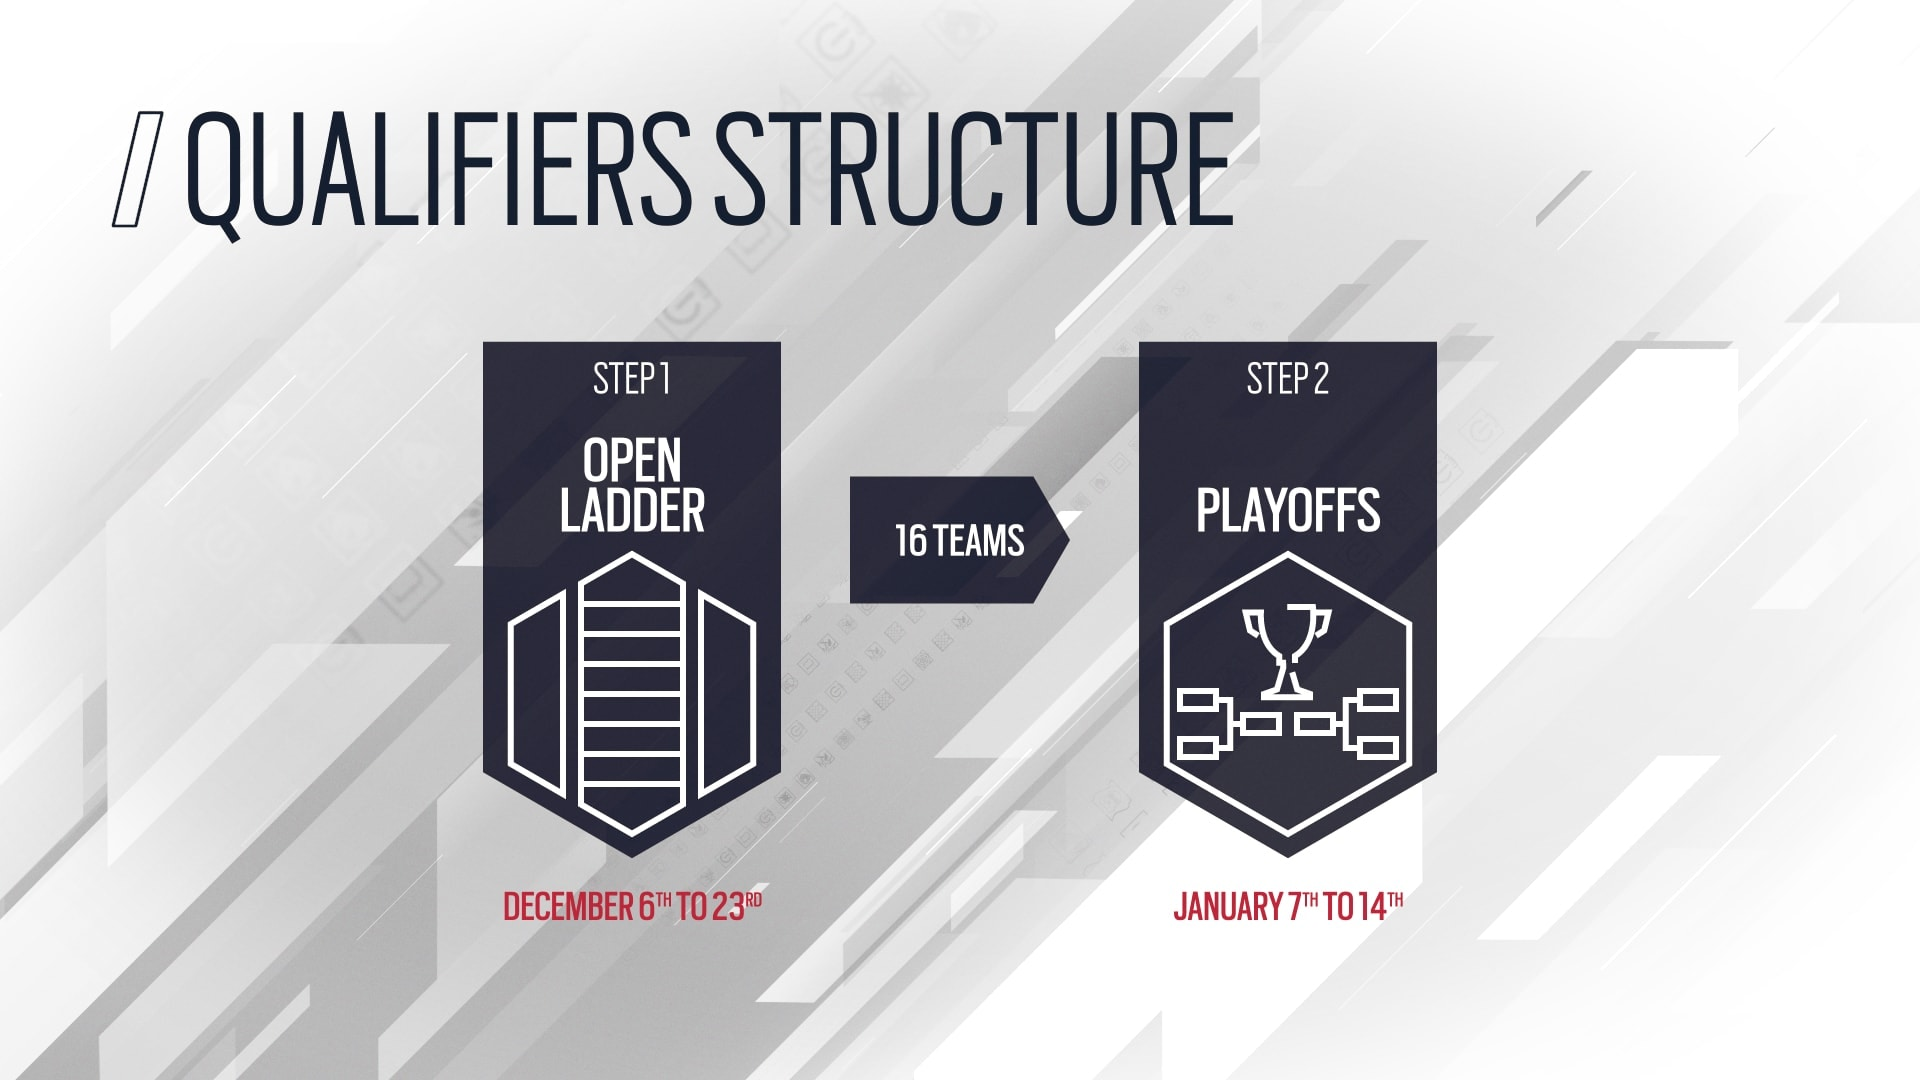 Qualifier structure